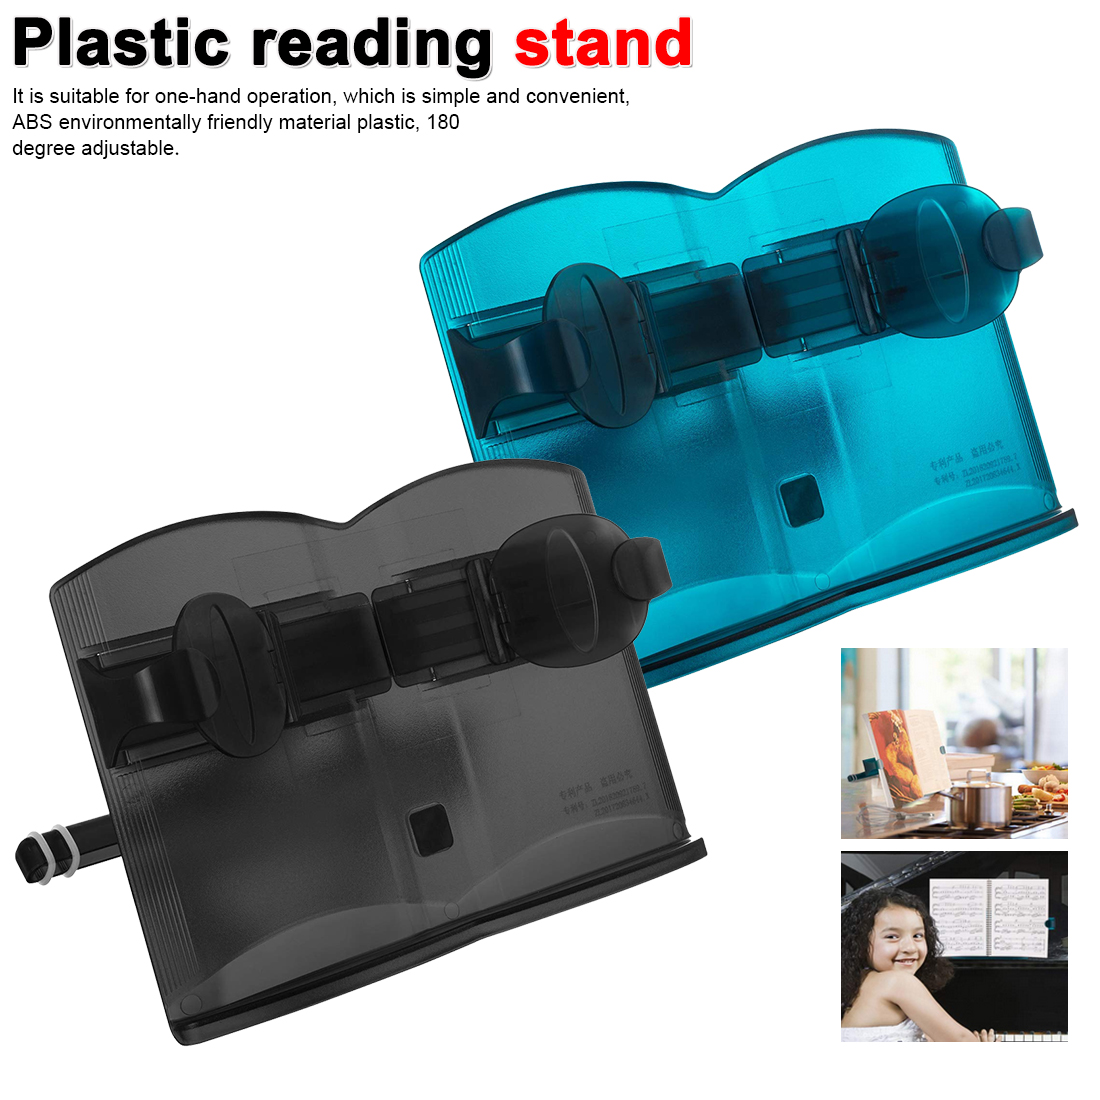 Adjustable Portable Children's Reading Stand Reading Office Supplies Multifunctional Plastic Book Stand Holder Reading Stand